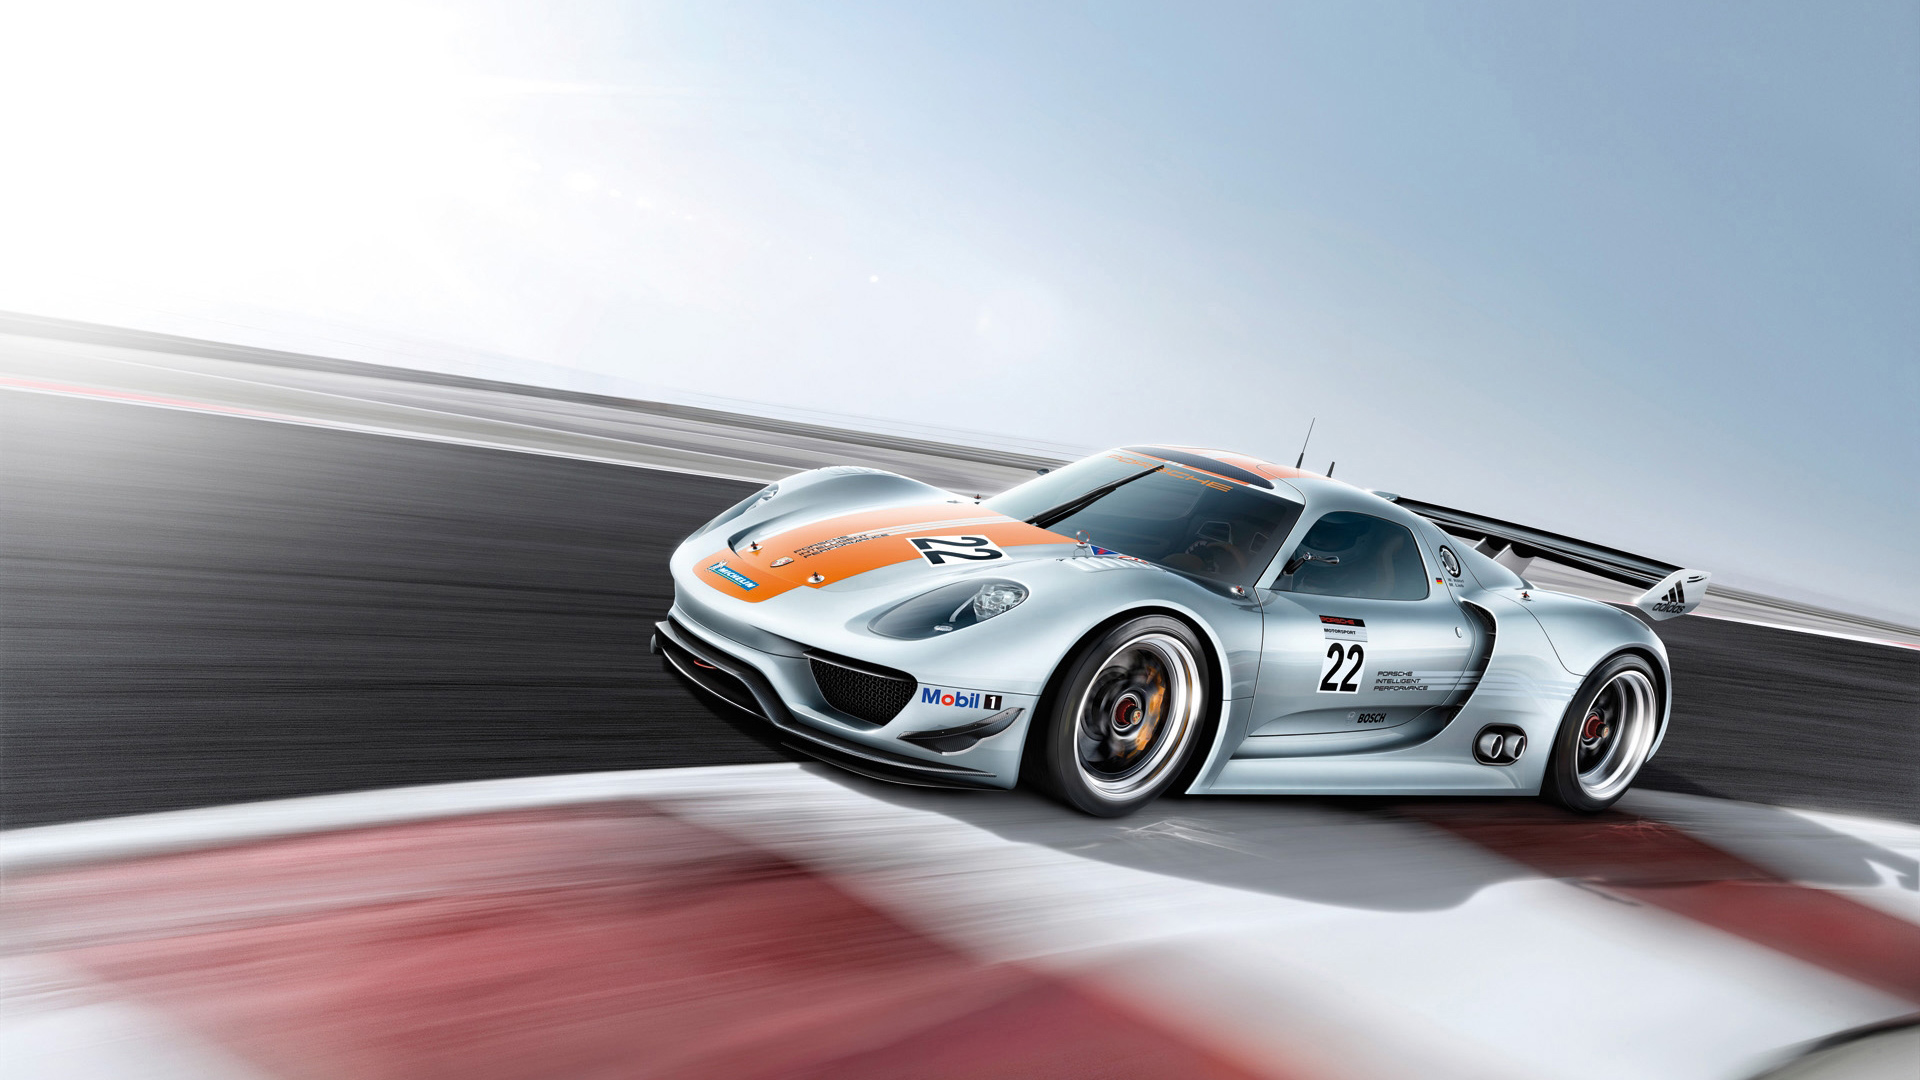 3dtuning Of Porsche 918 Rsr Coupe 2012 3dtuning Com Unique On Line Car Configurator For More